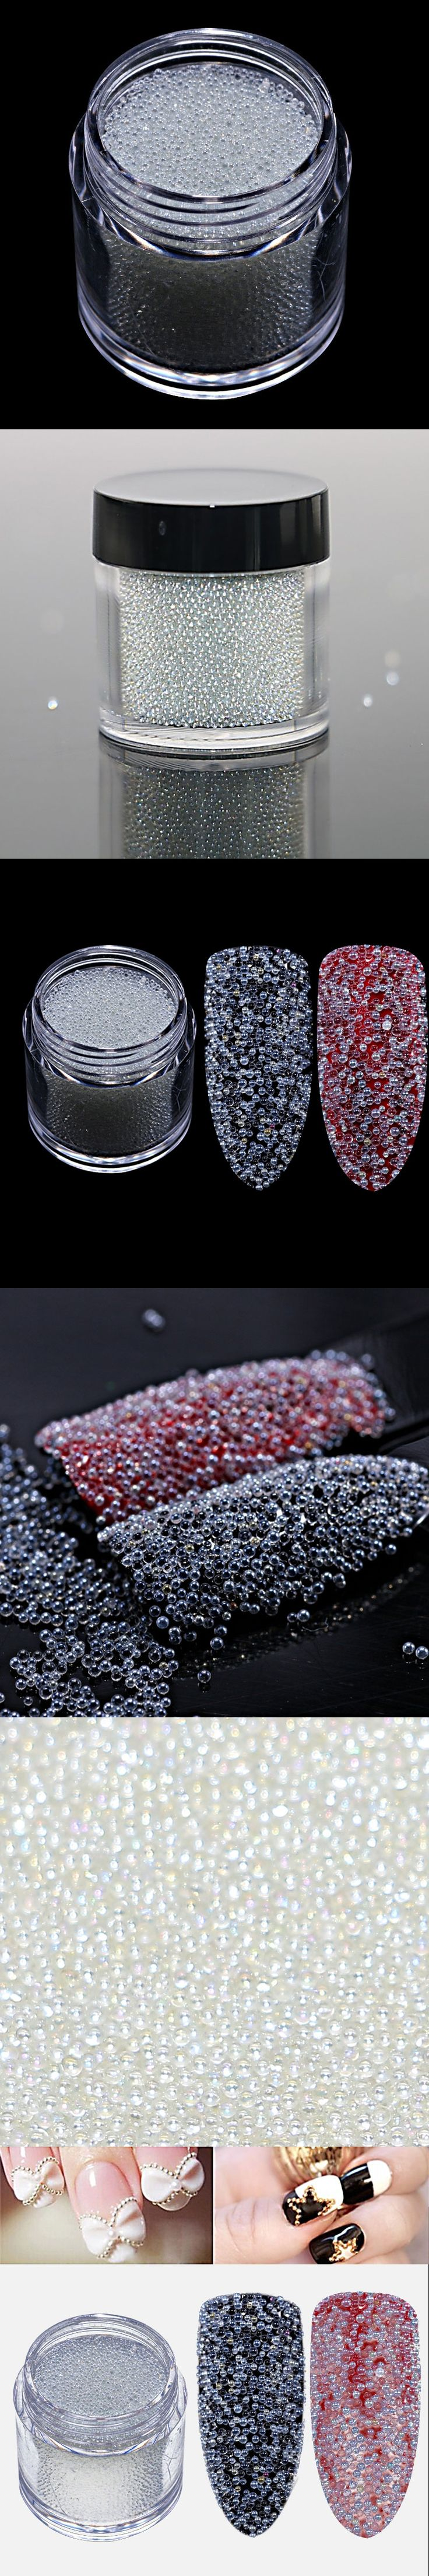 F Nail Studs Powder 0.6-0.8mm 15g/jar Clear AB Caviar Mini Glitter Beads Manicures Nail Art Glitter Decoration DIY Nail Art